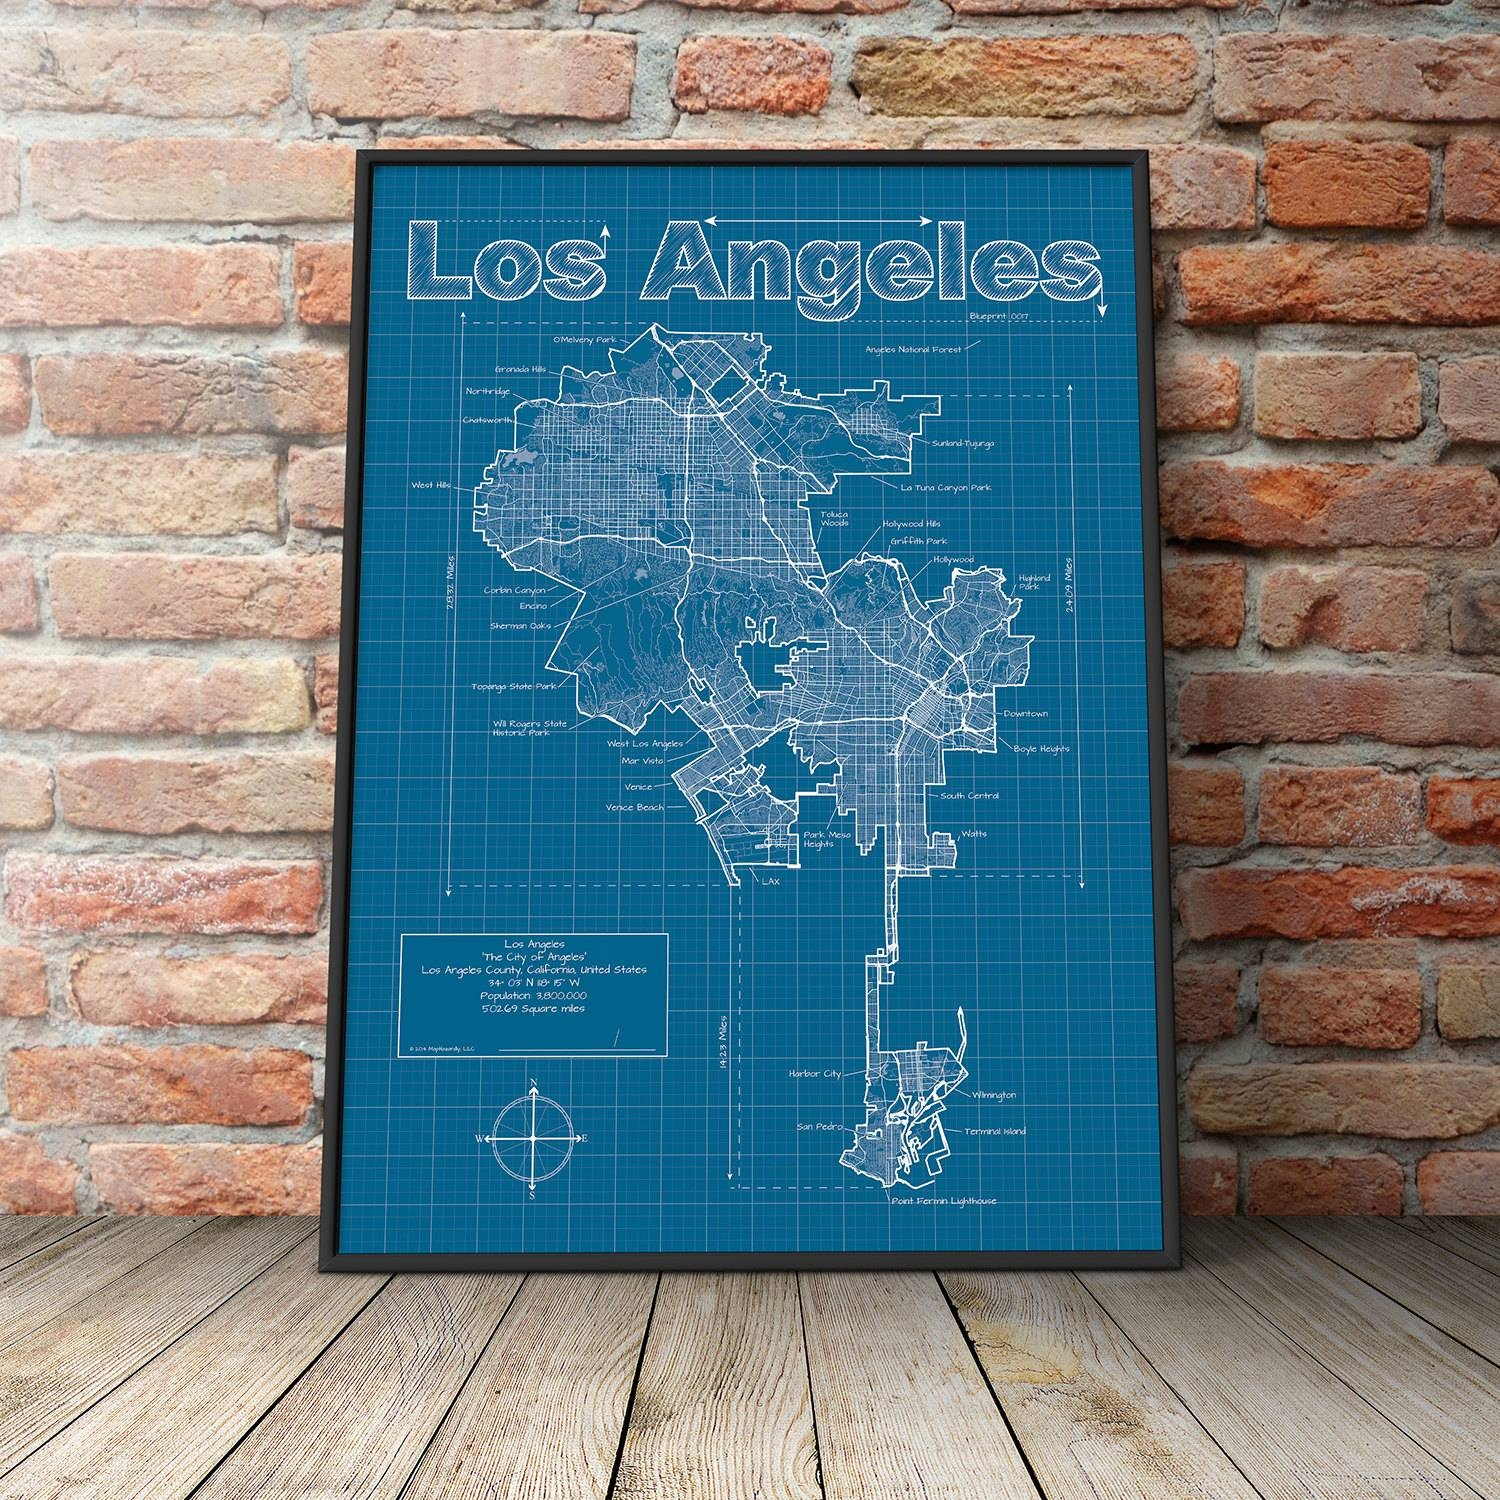 Los Angeles Map / Original Artwork / Los Angeles Map Art / With Most Popular Street Map Wall Art (View 12 of 20)